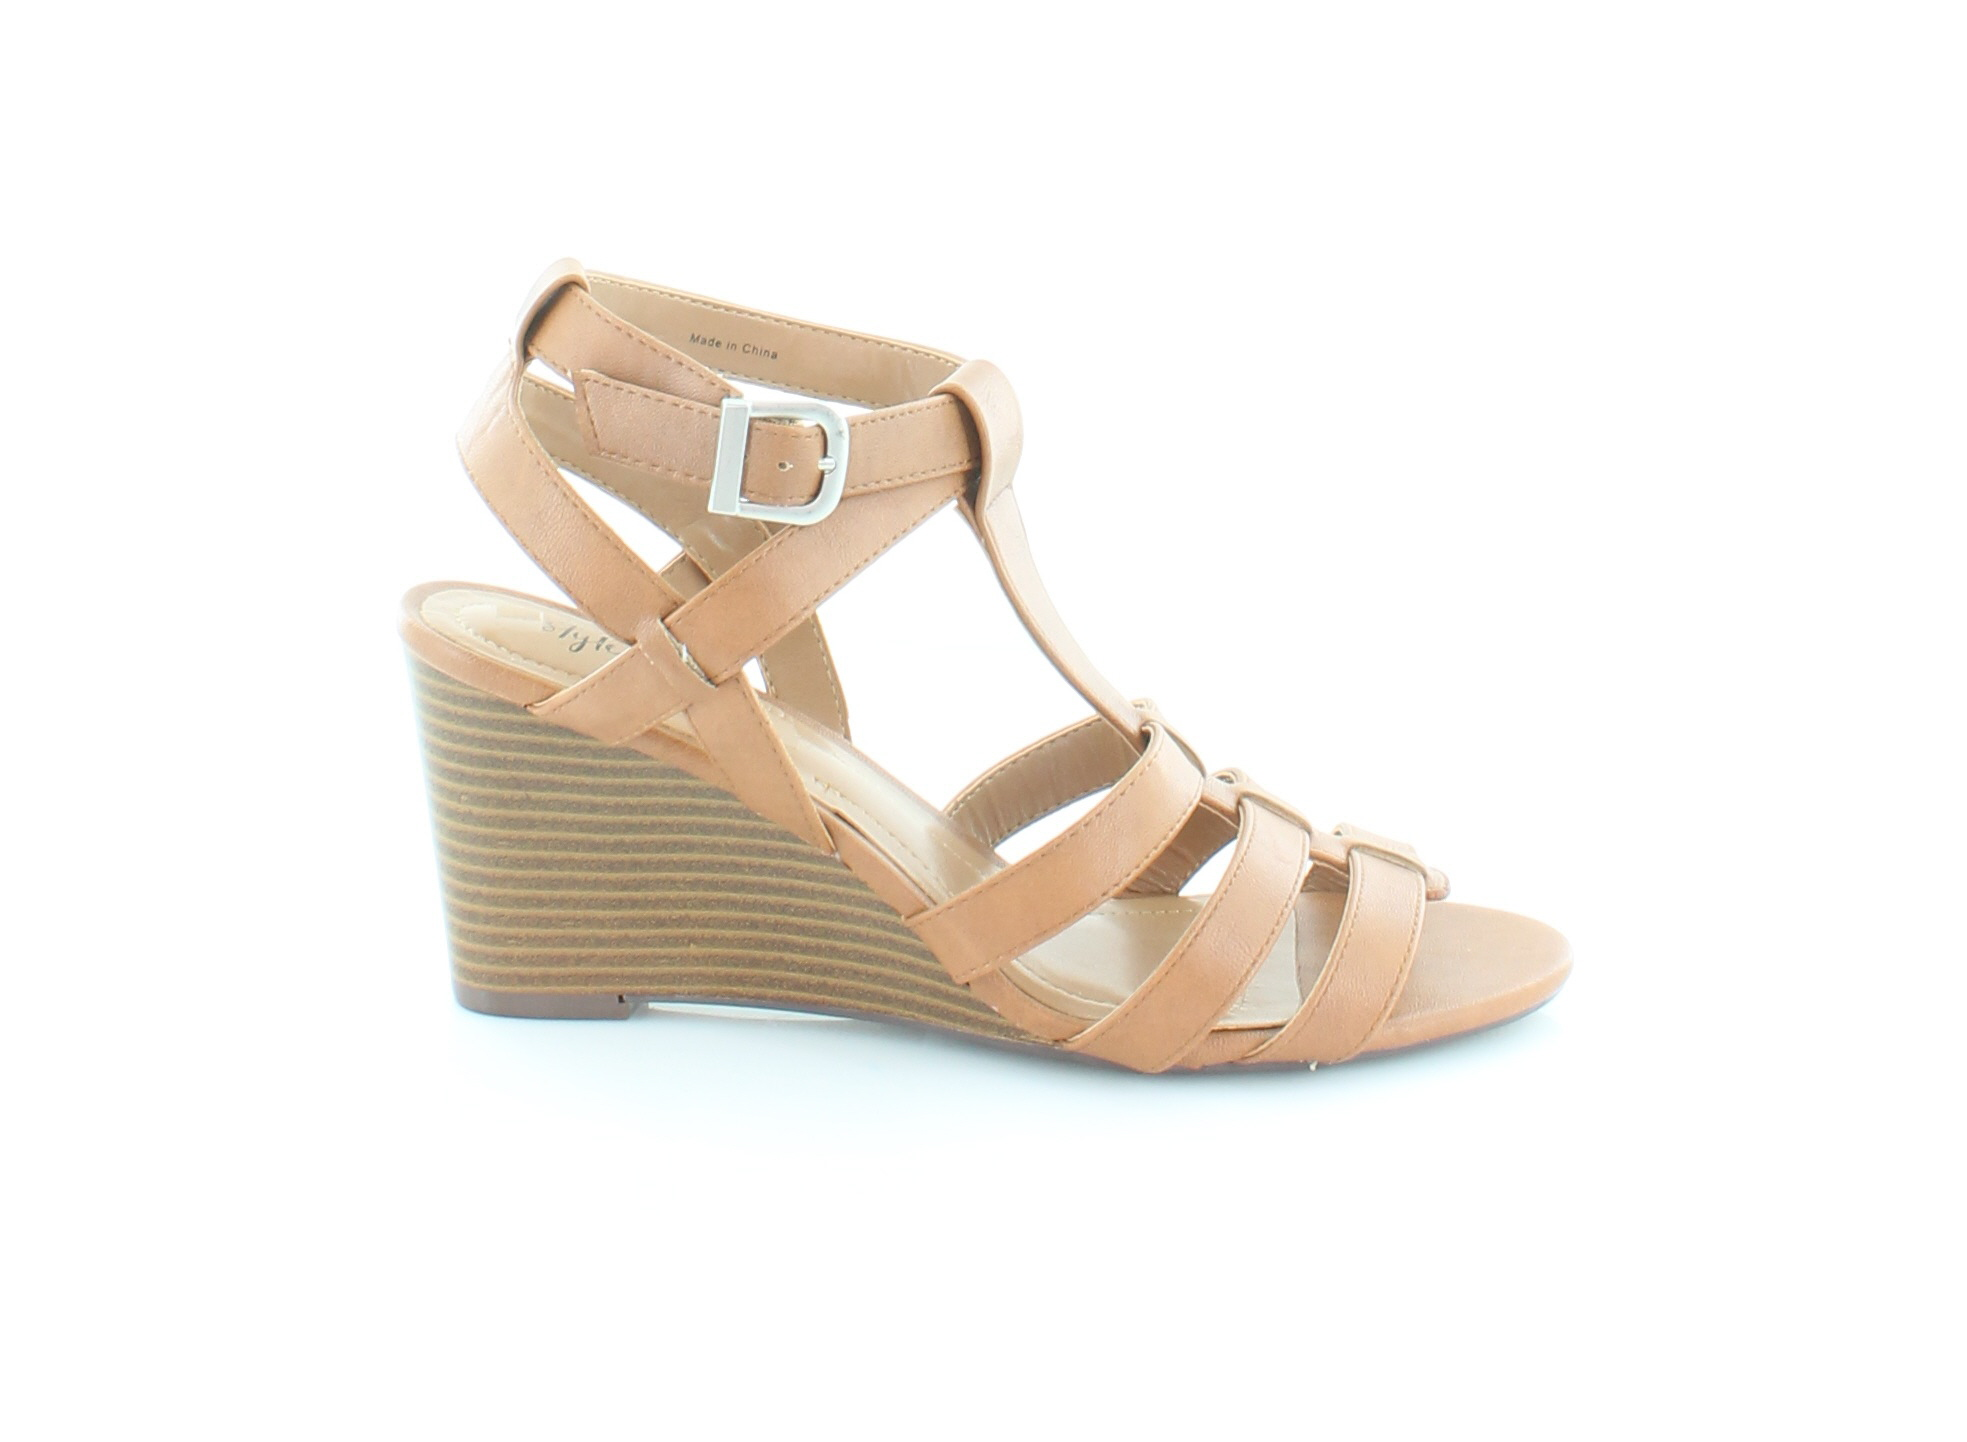 Style & Shoes Co. Haydar Brown Womens Shoes & Size 9.5 M Sandals MSRP $69.99 cf6ae7